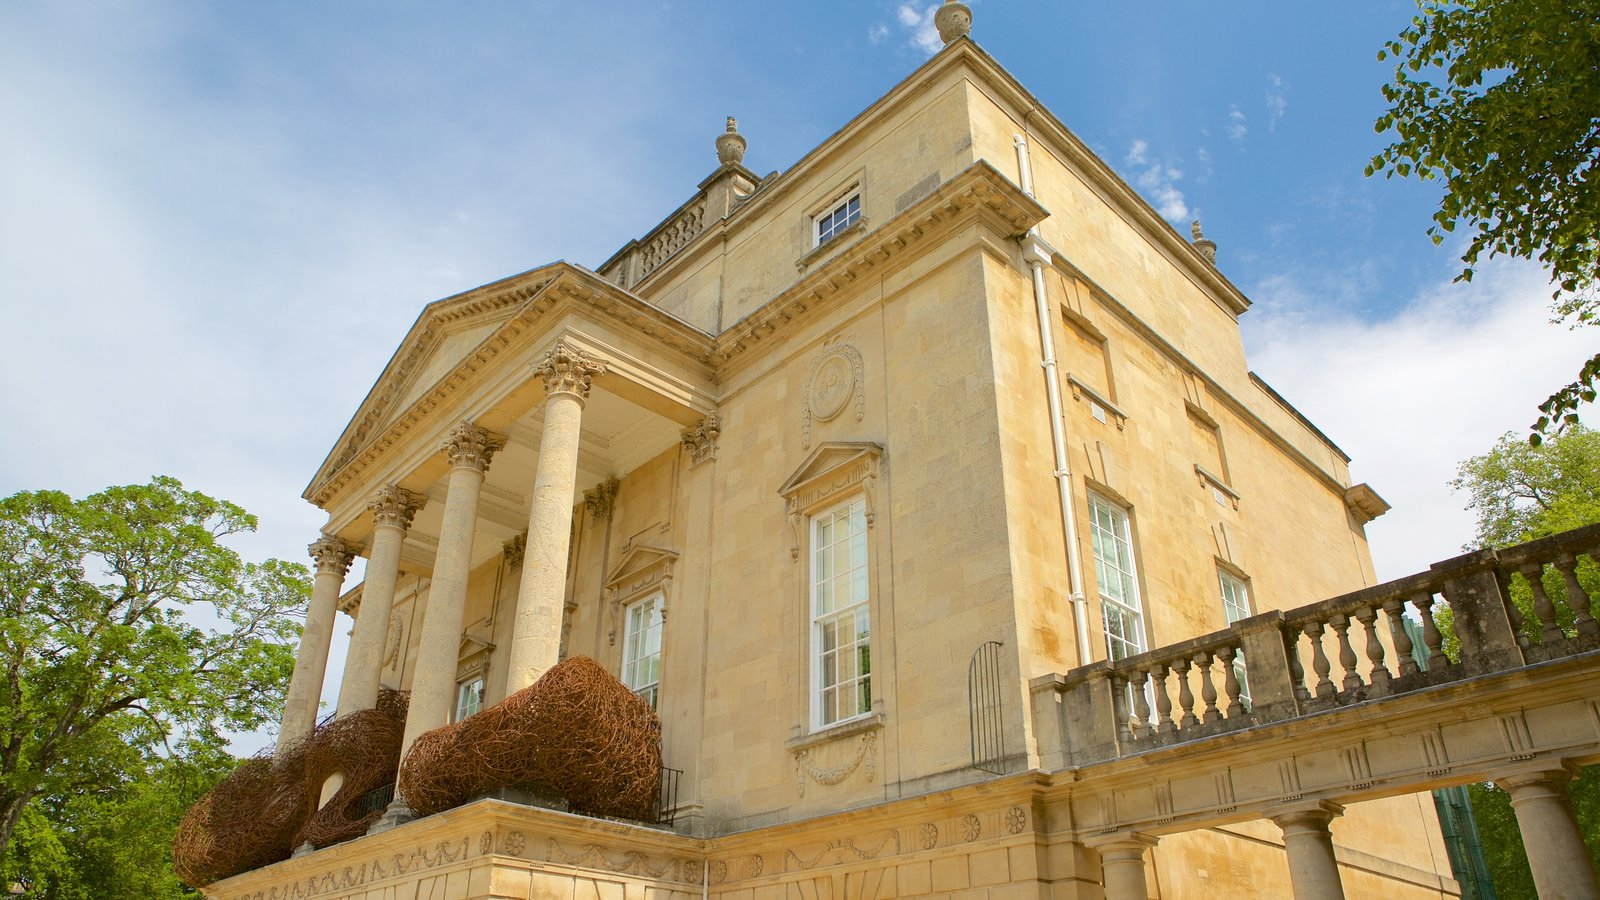 The Holburne Museum showing heritage architecture